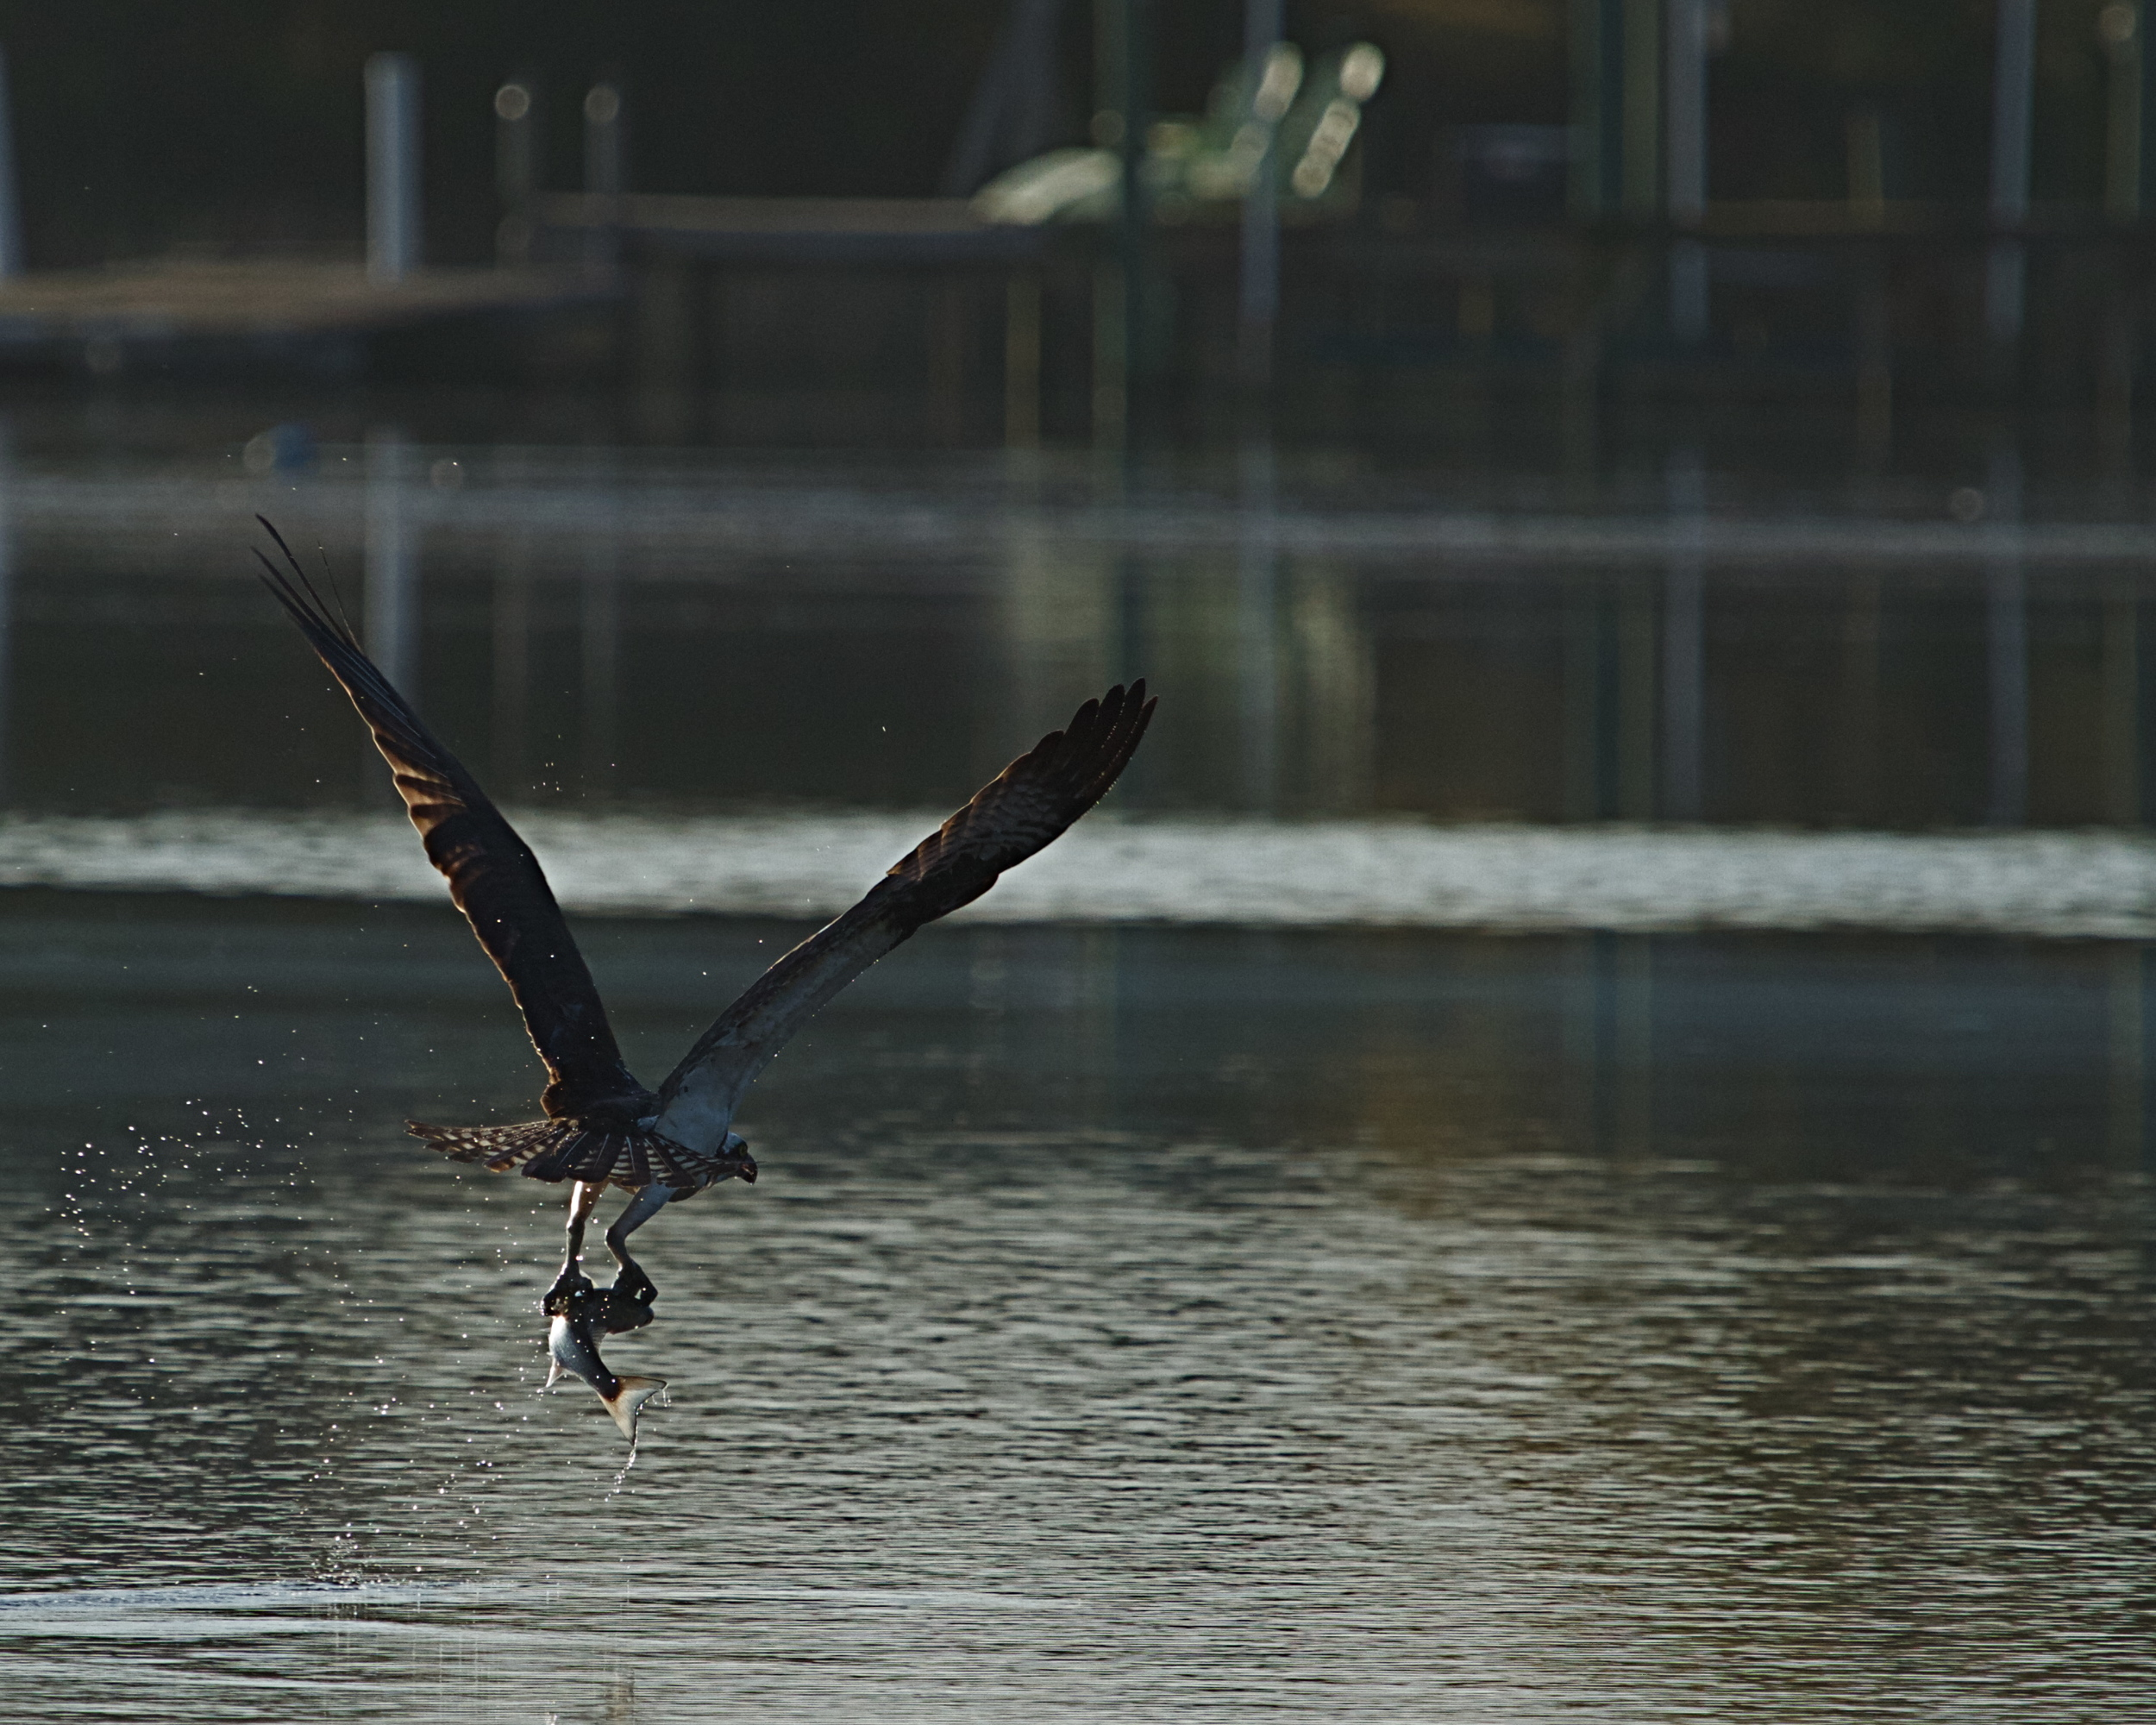 An Osprey lifts its morning catch from the river.